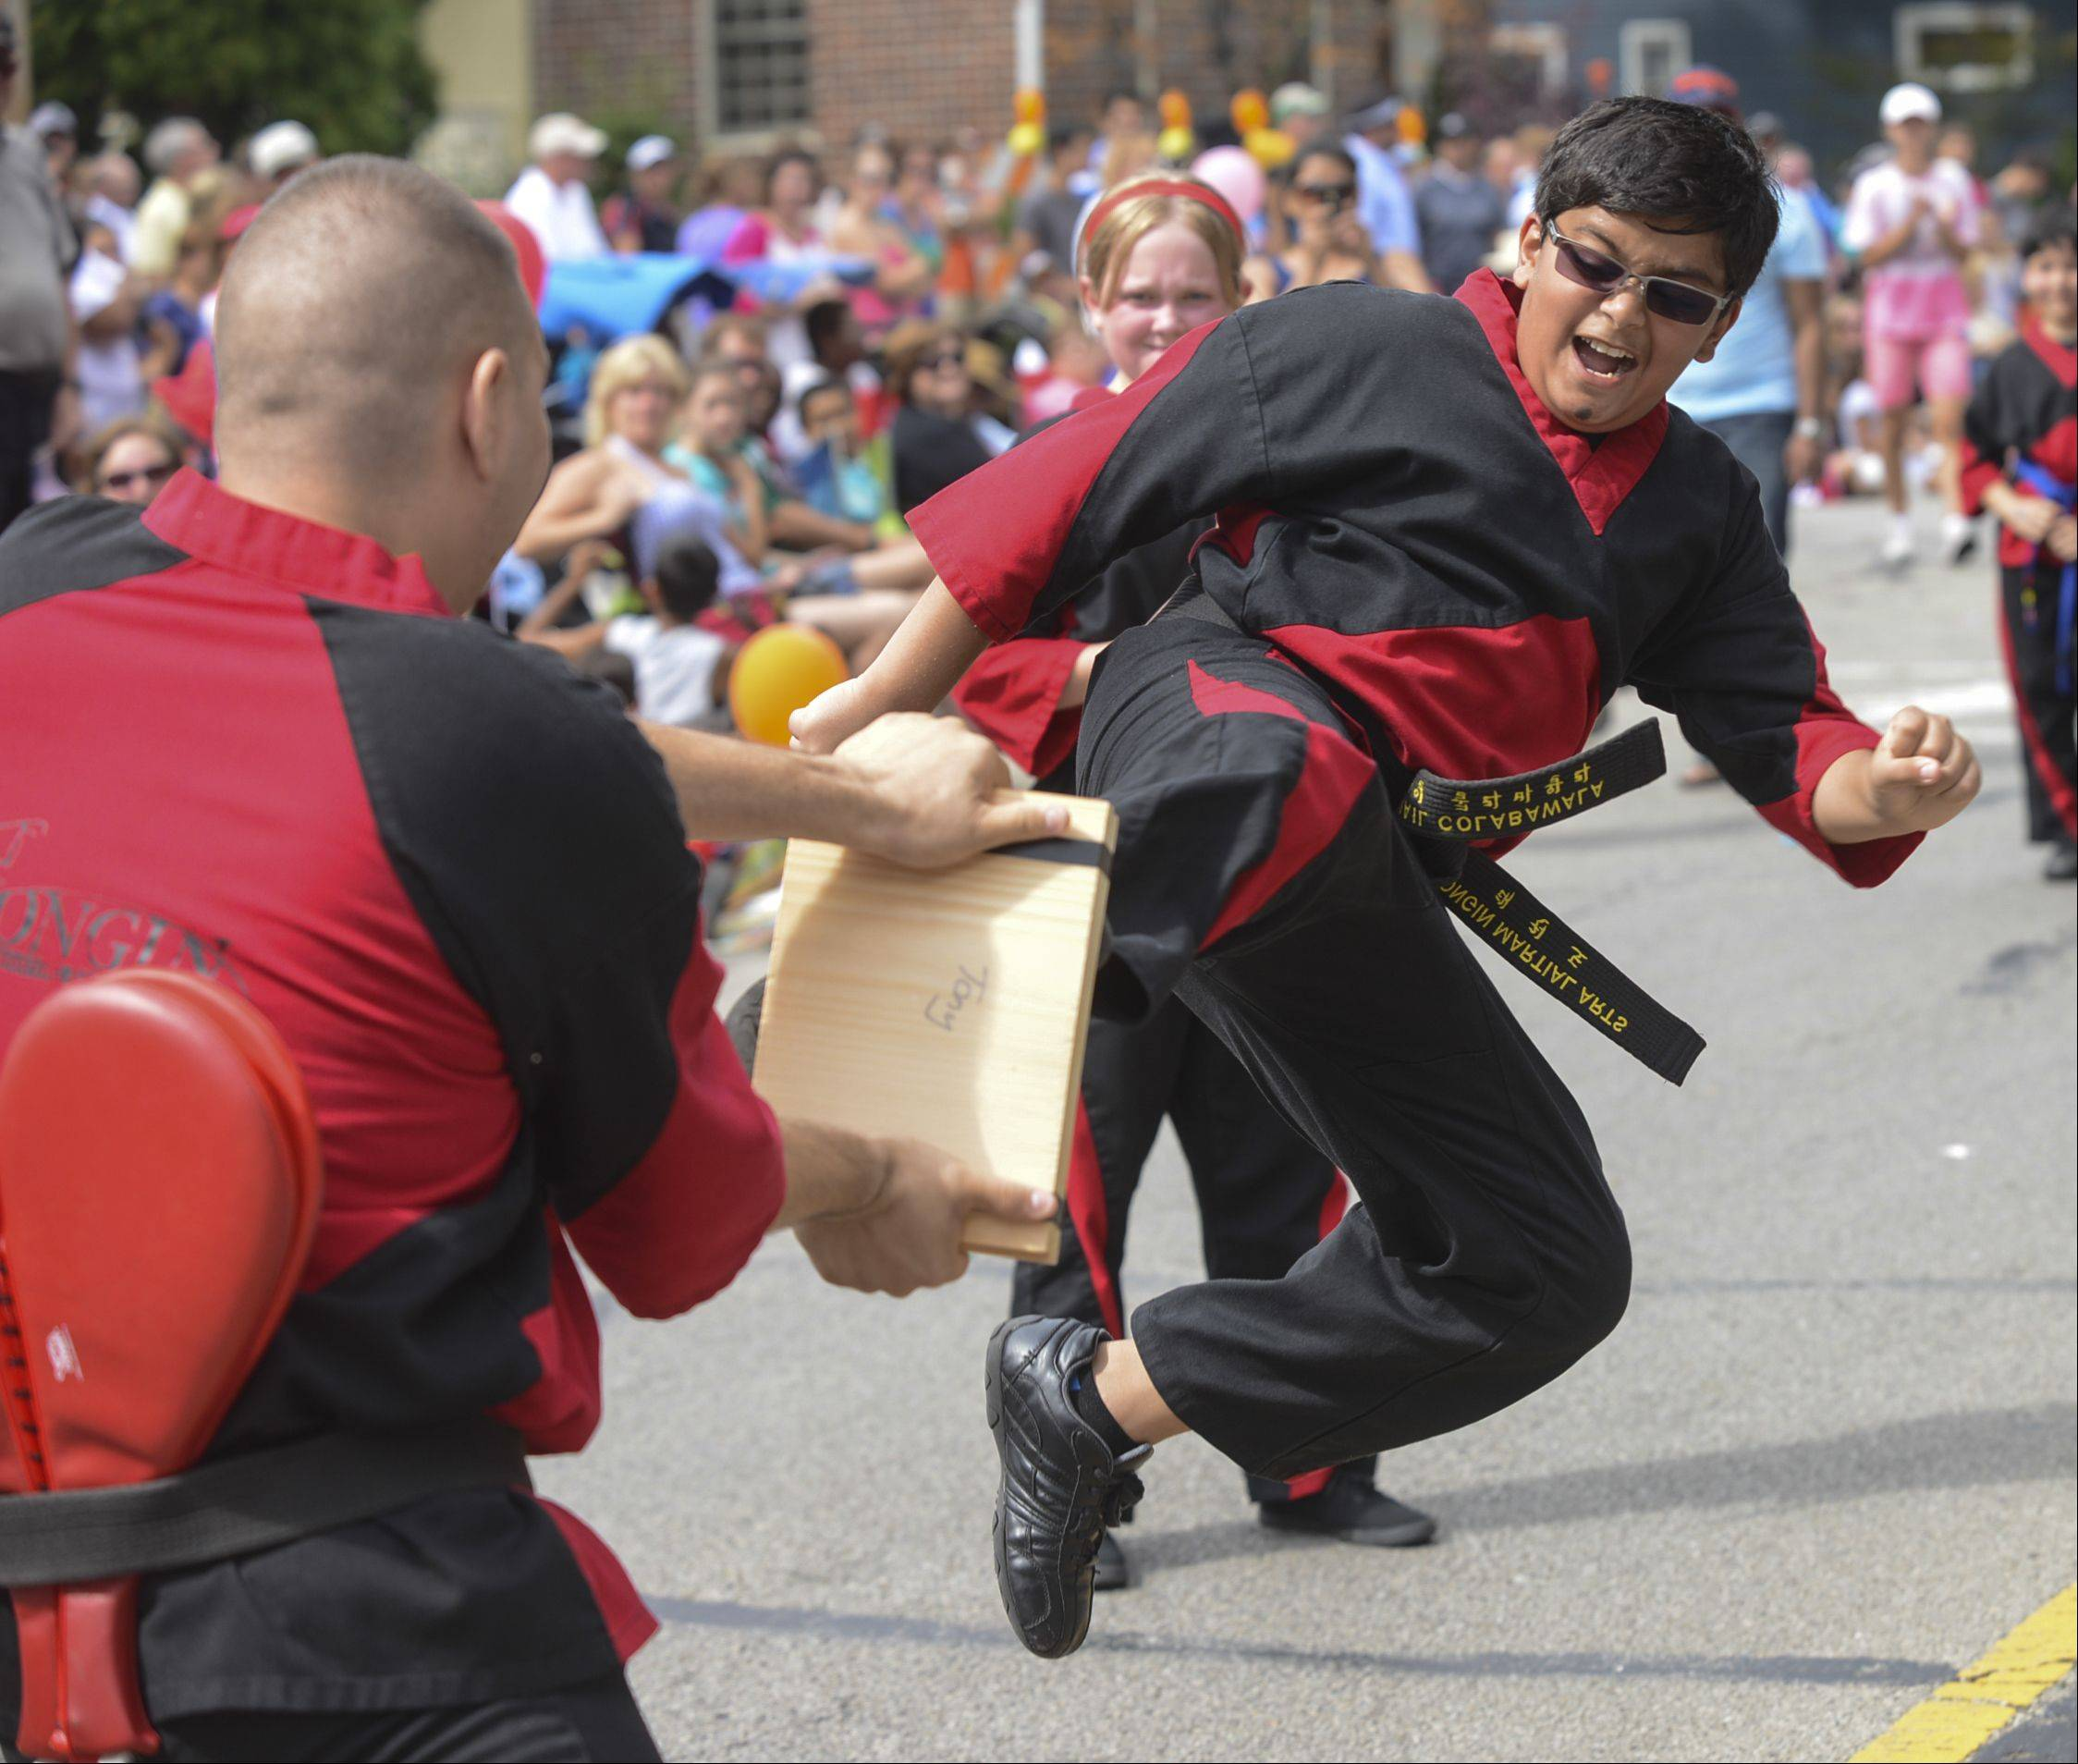 Yongin martial arts student Kumail Colabawala, 12, of Naperville does a flying kick in an attempt to break two boards during the Labor Day parade Monday in Naperville.